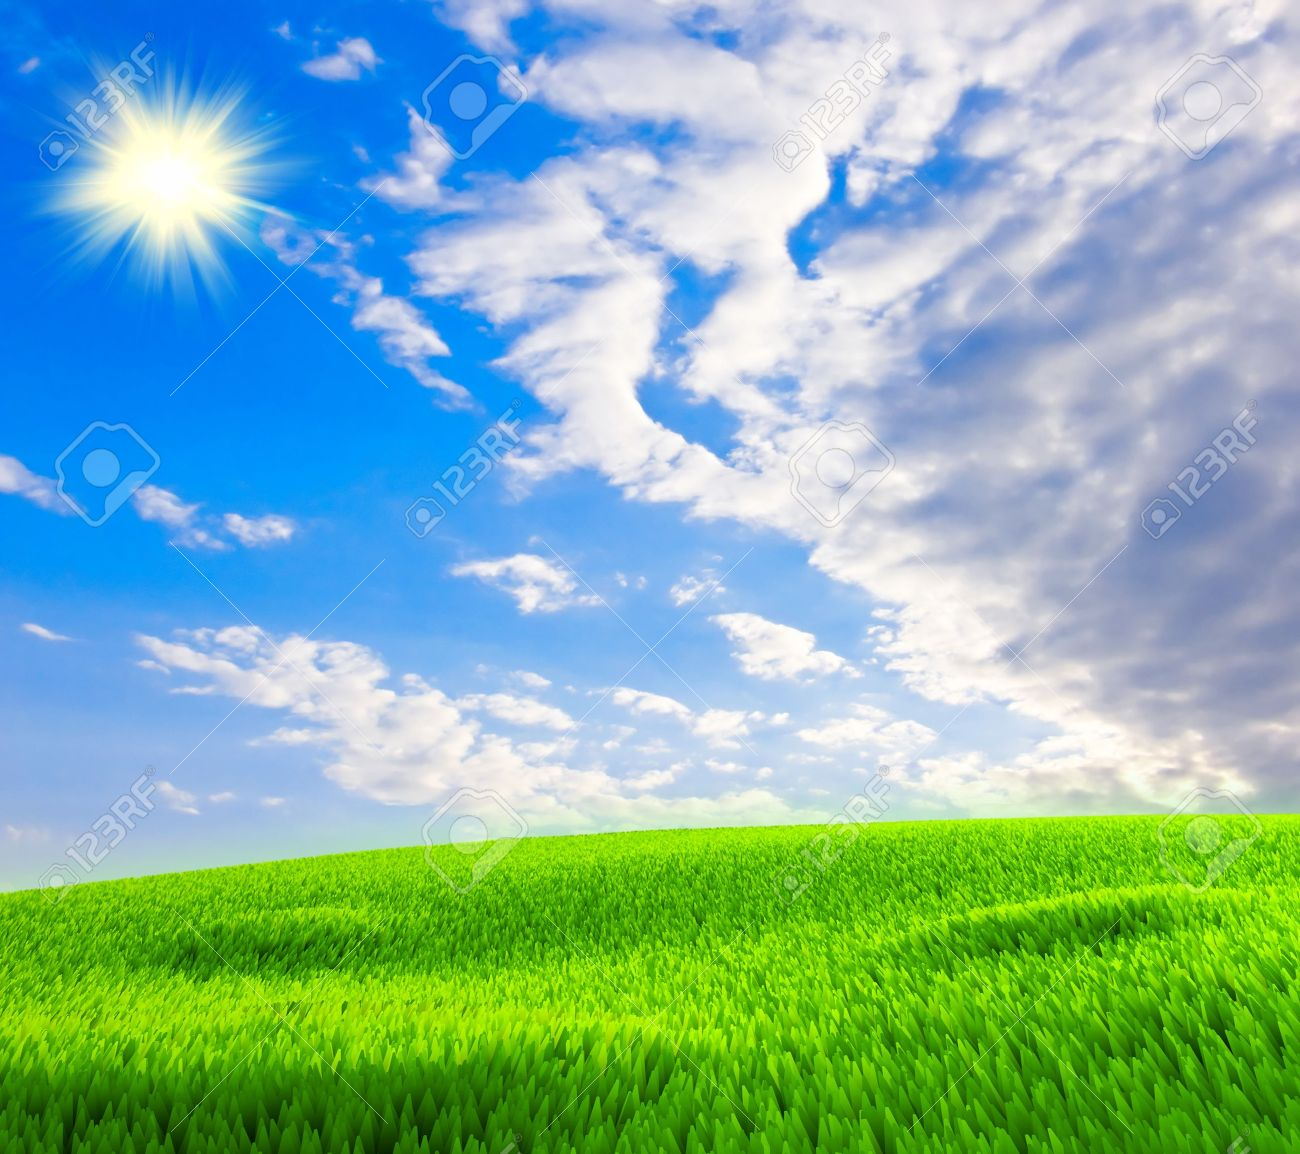 Sunny Weather In Summer Nice Background Stock Photo Picture And Royalty Free Image Image 5852077